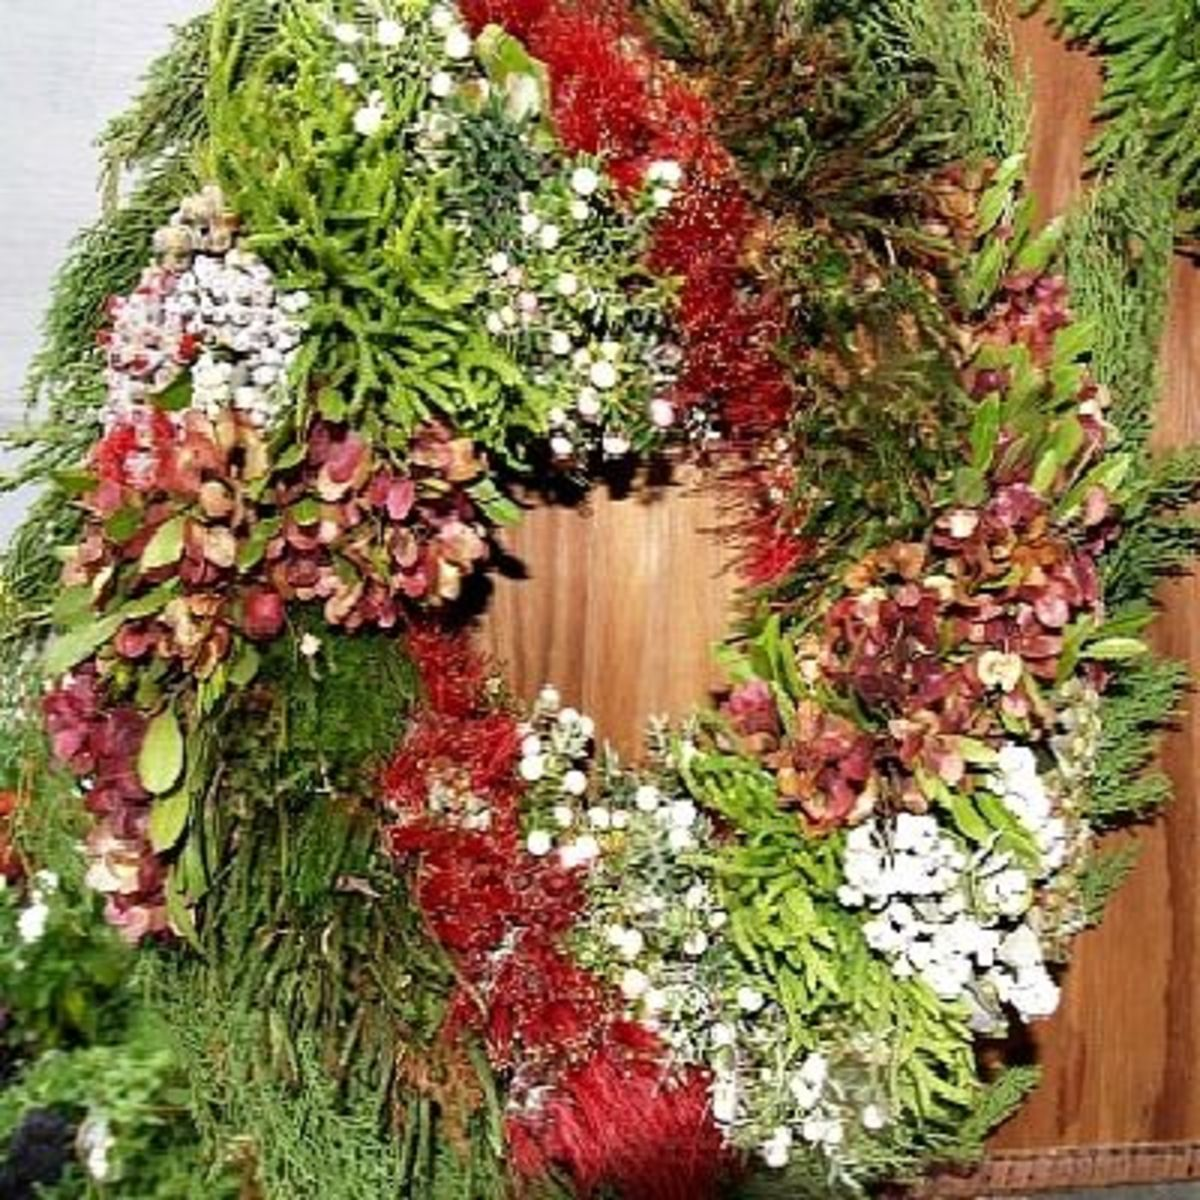 A Christmas wreath made of all natural vegetation from the Volcano area,